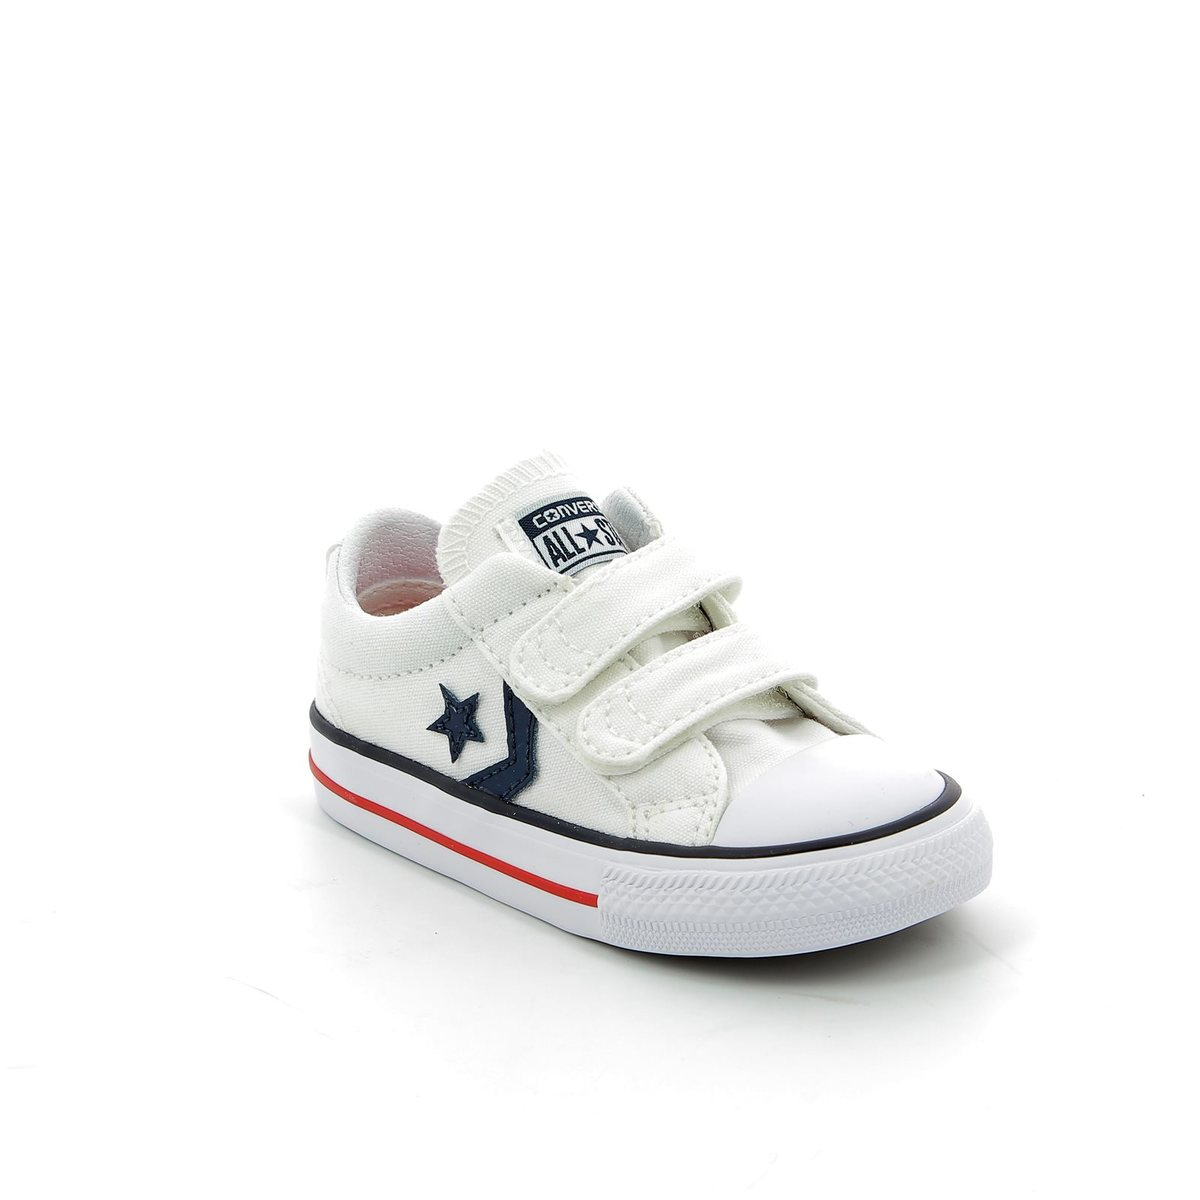 60c106de283e Converse Trainers - White multi - 715660C Star Player 2V OX Velcro